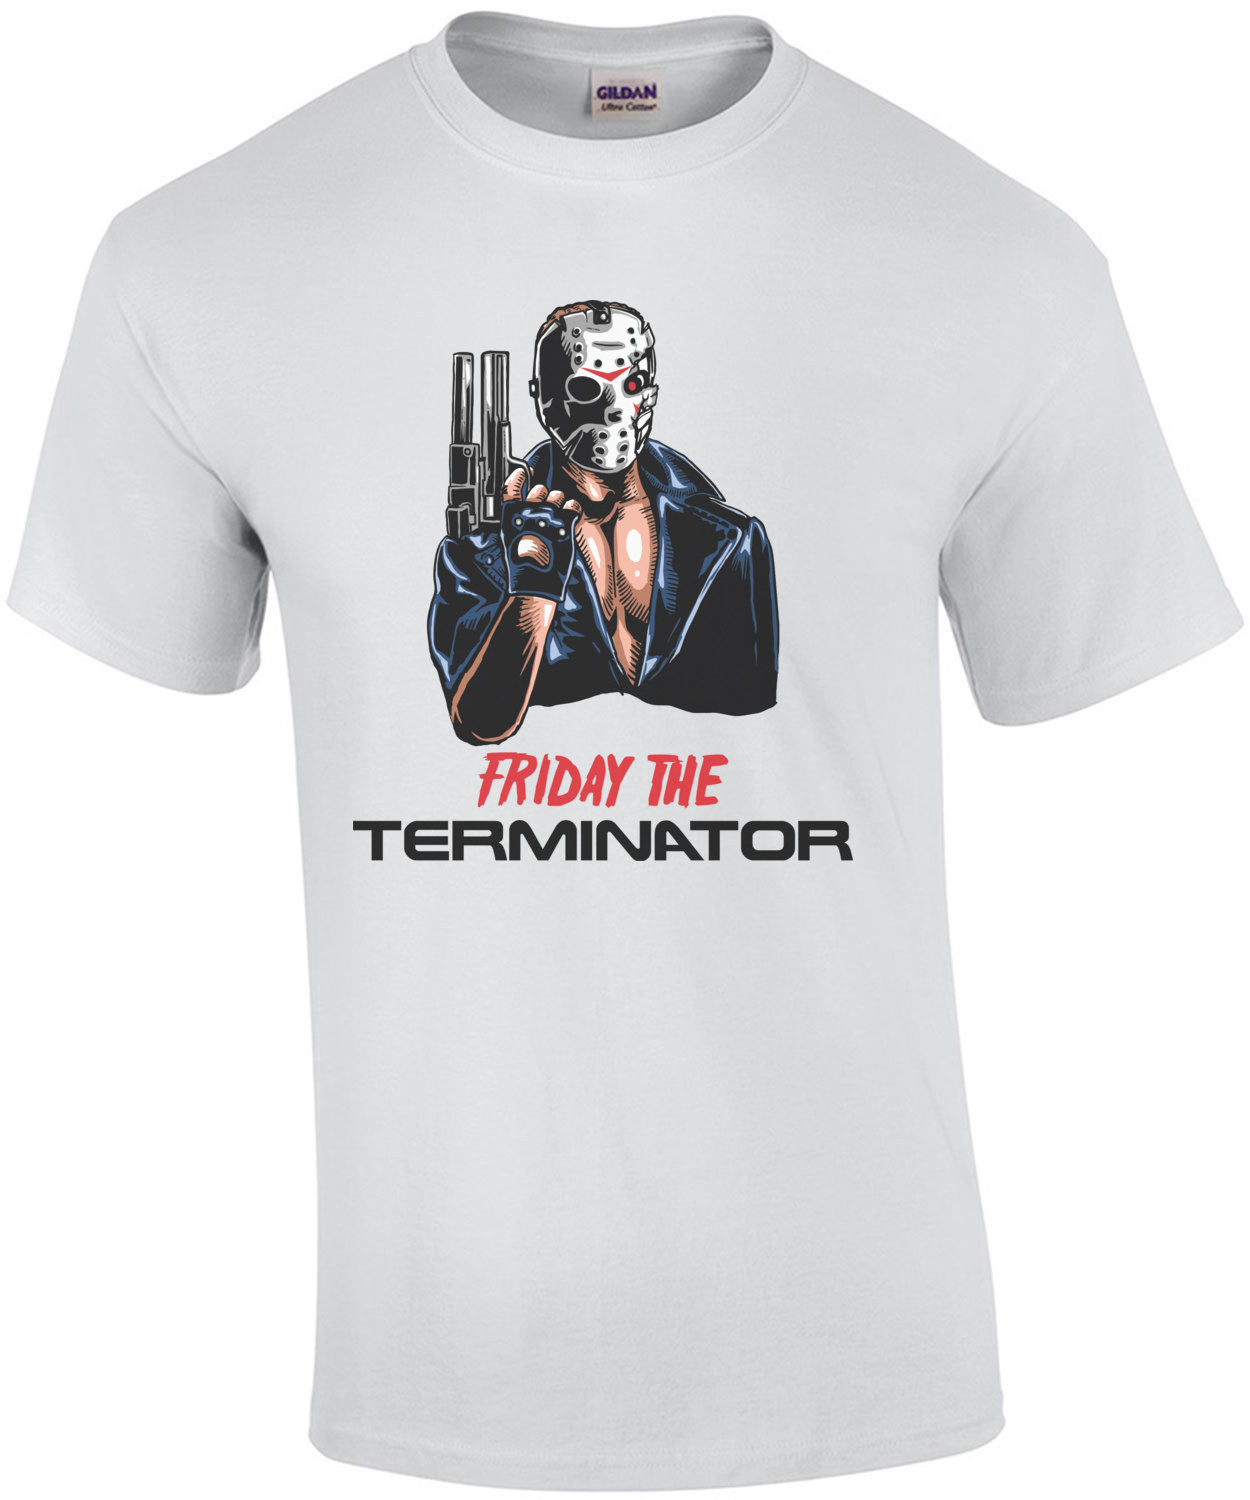 Friday The Terminator T-Shirt